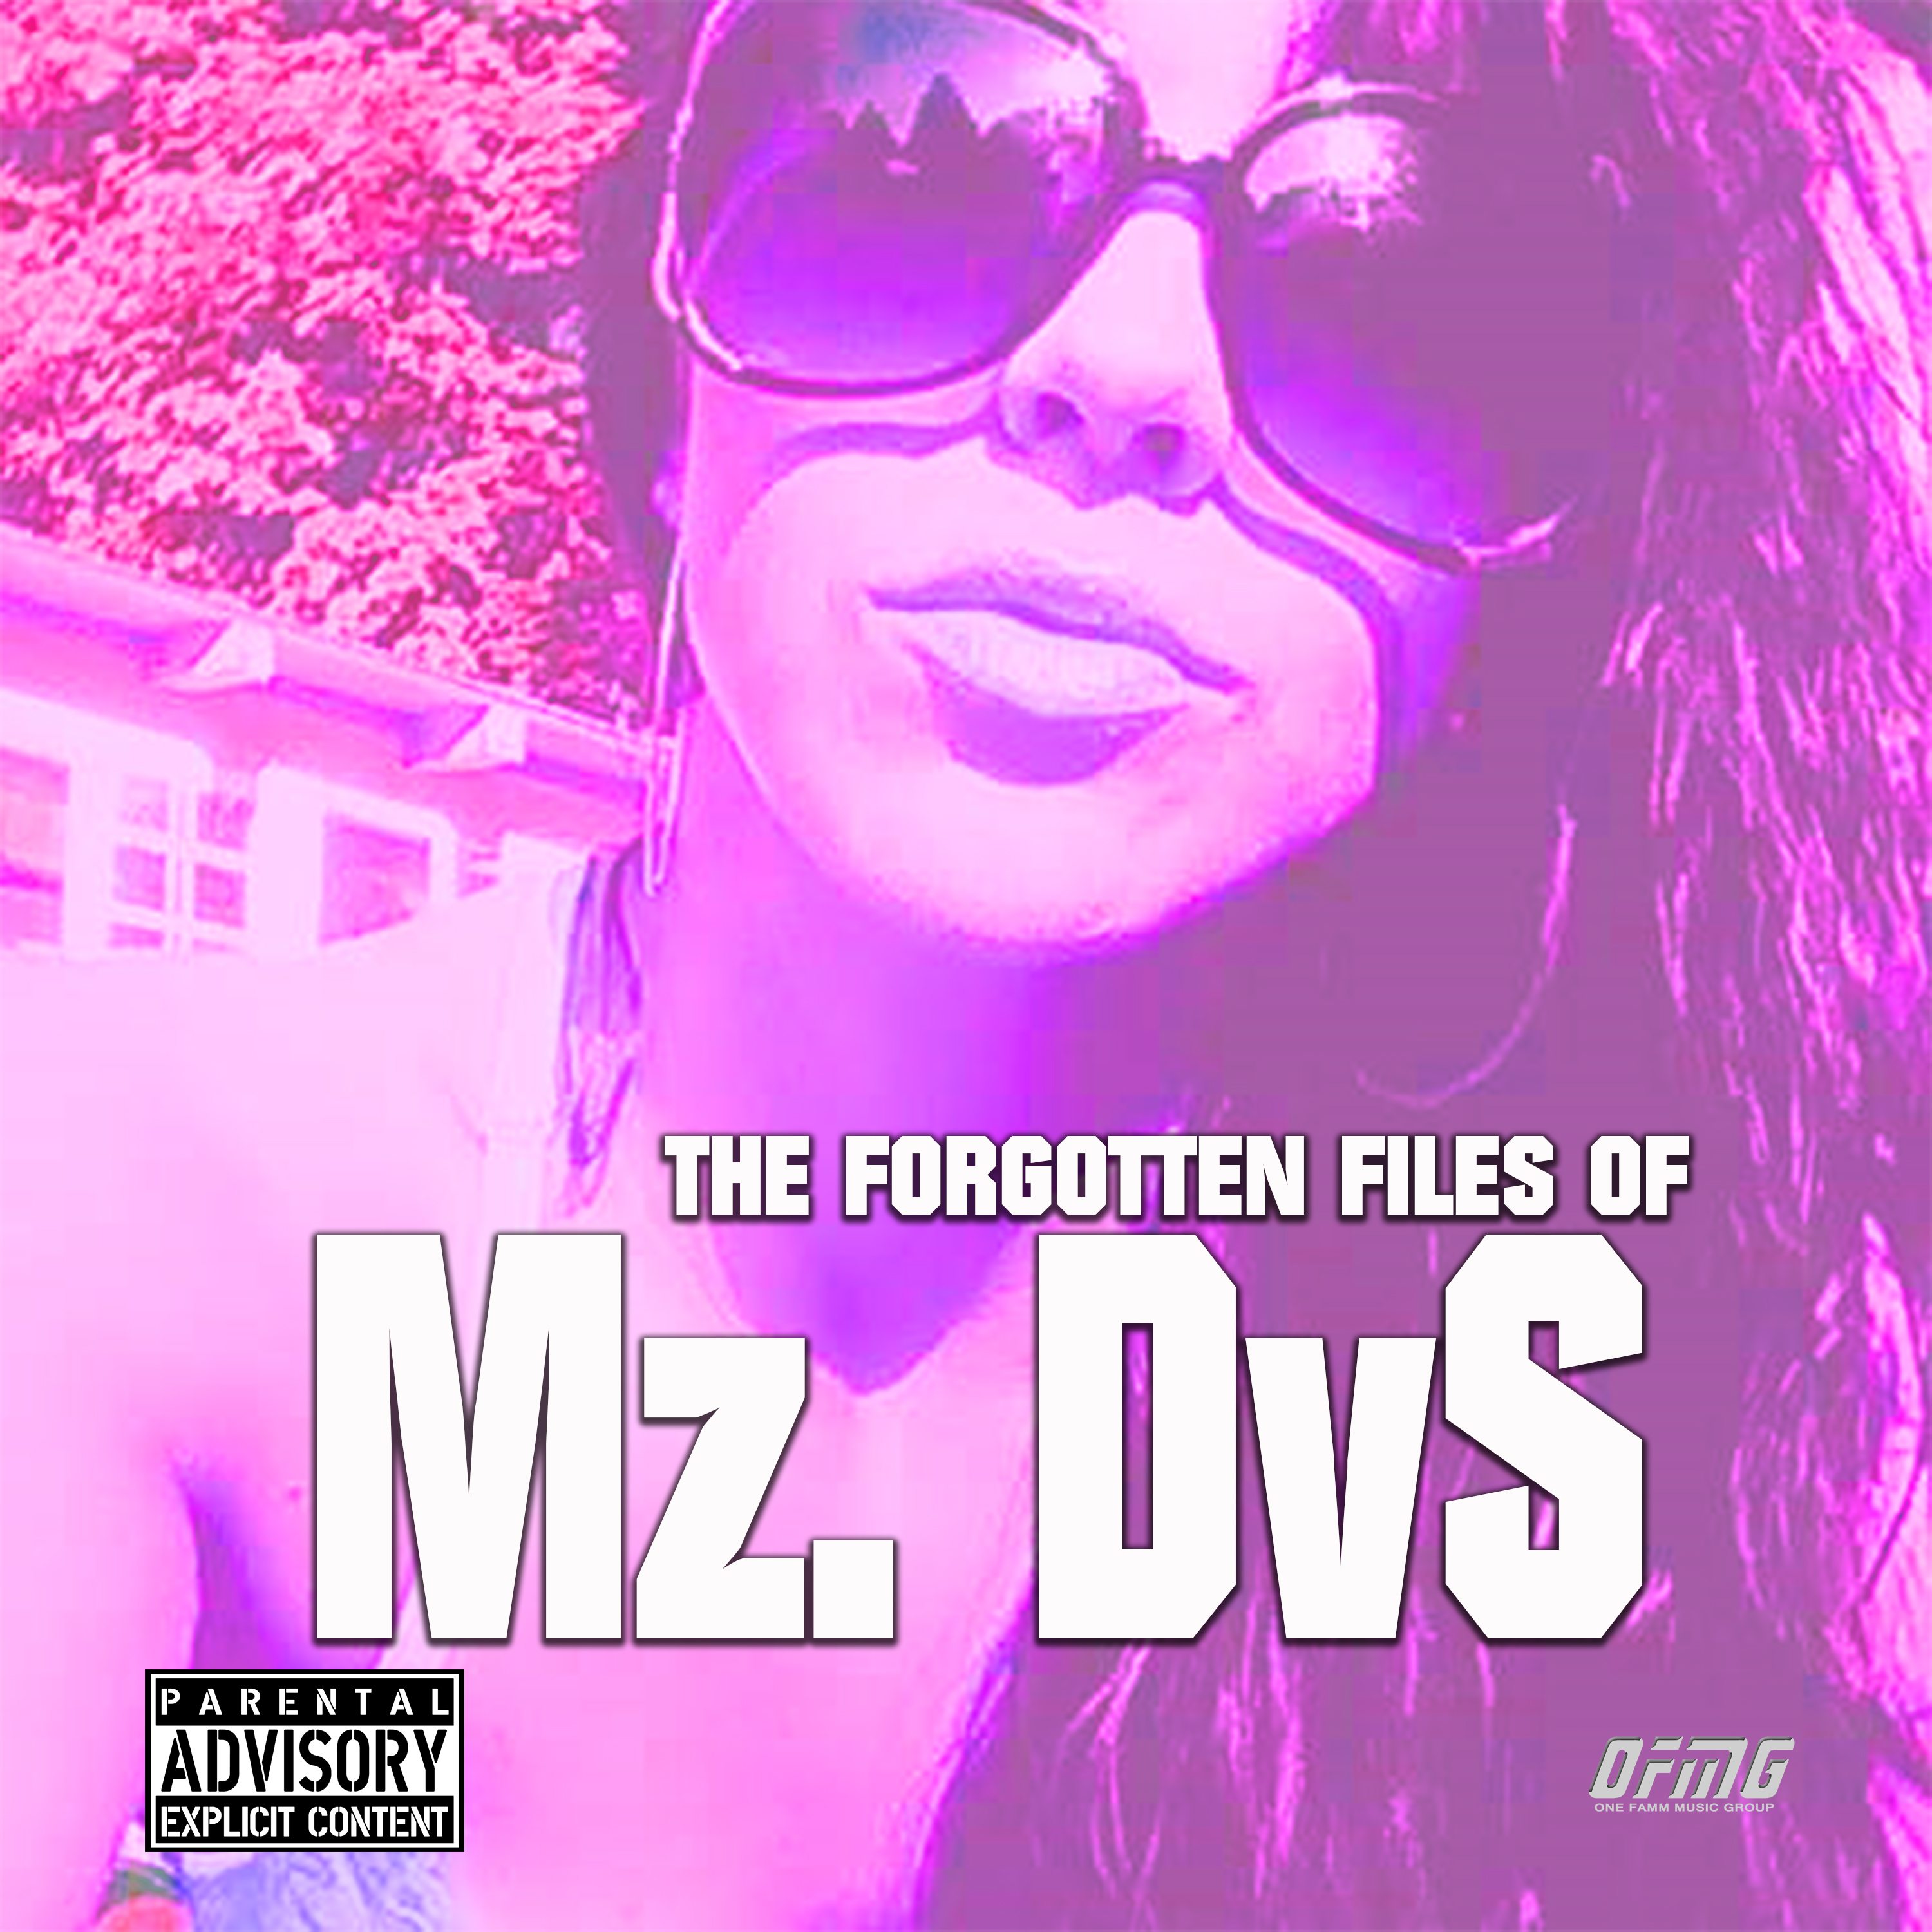 The Forgotten files of DvS